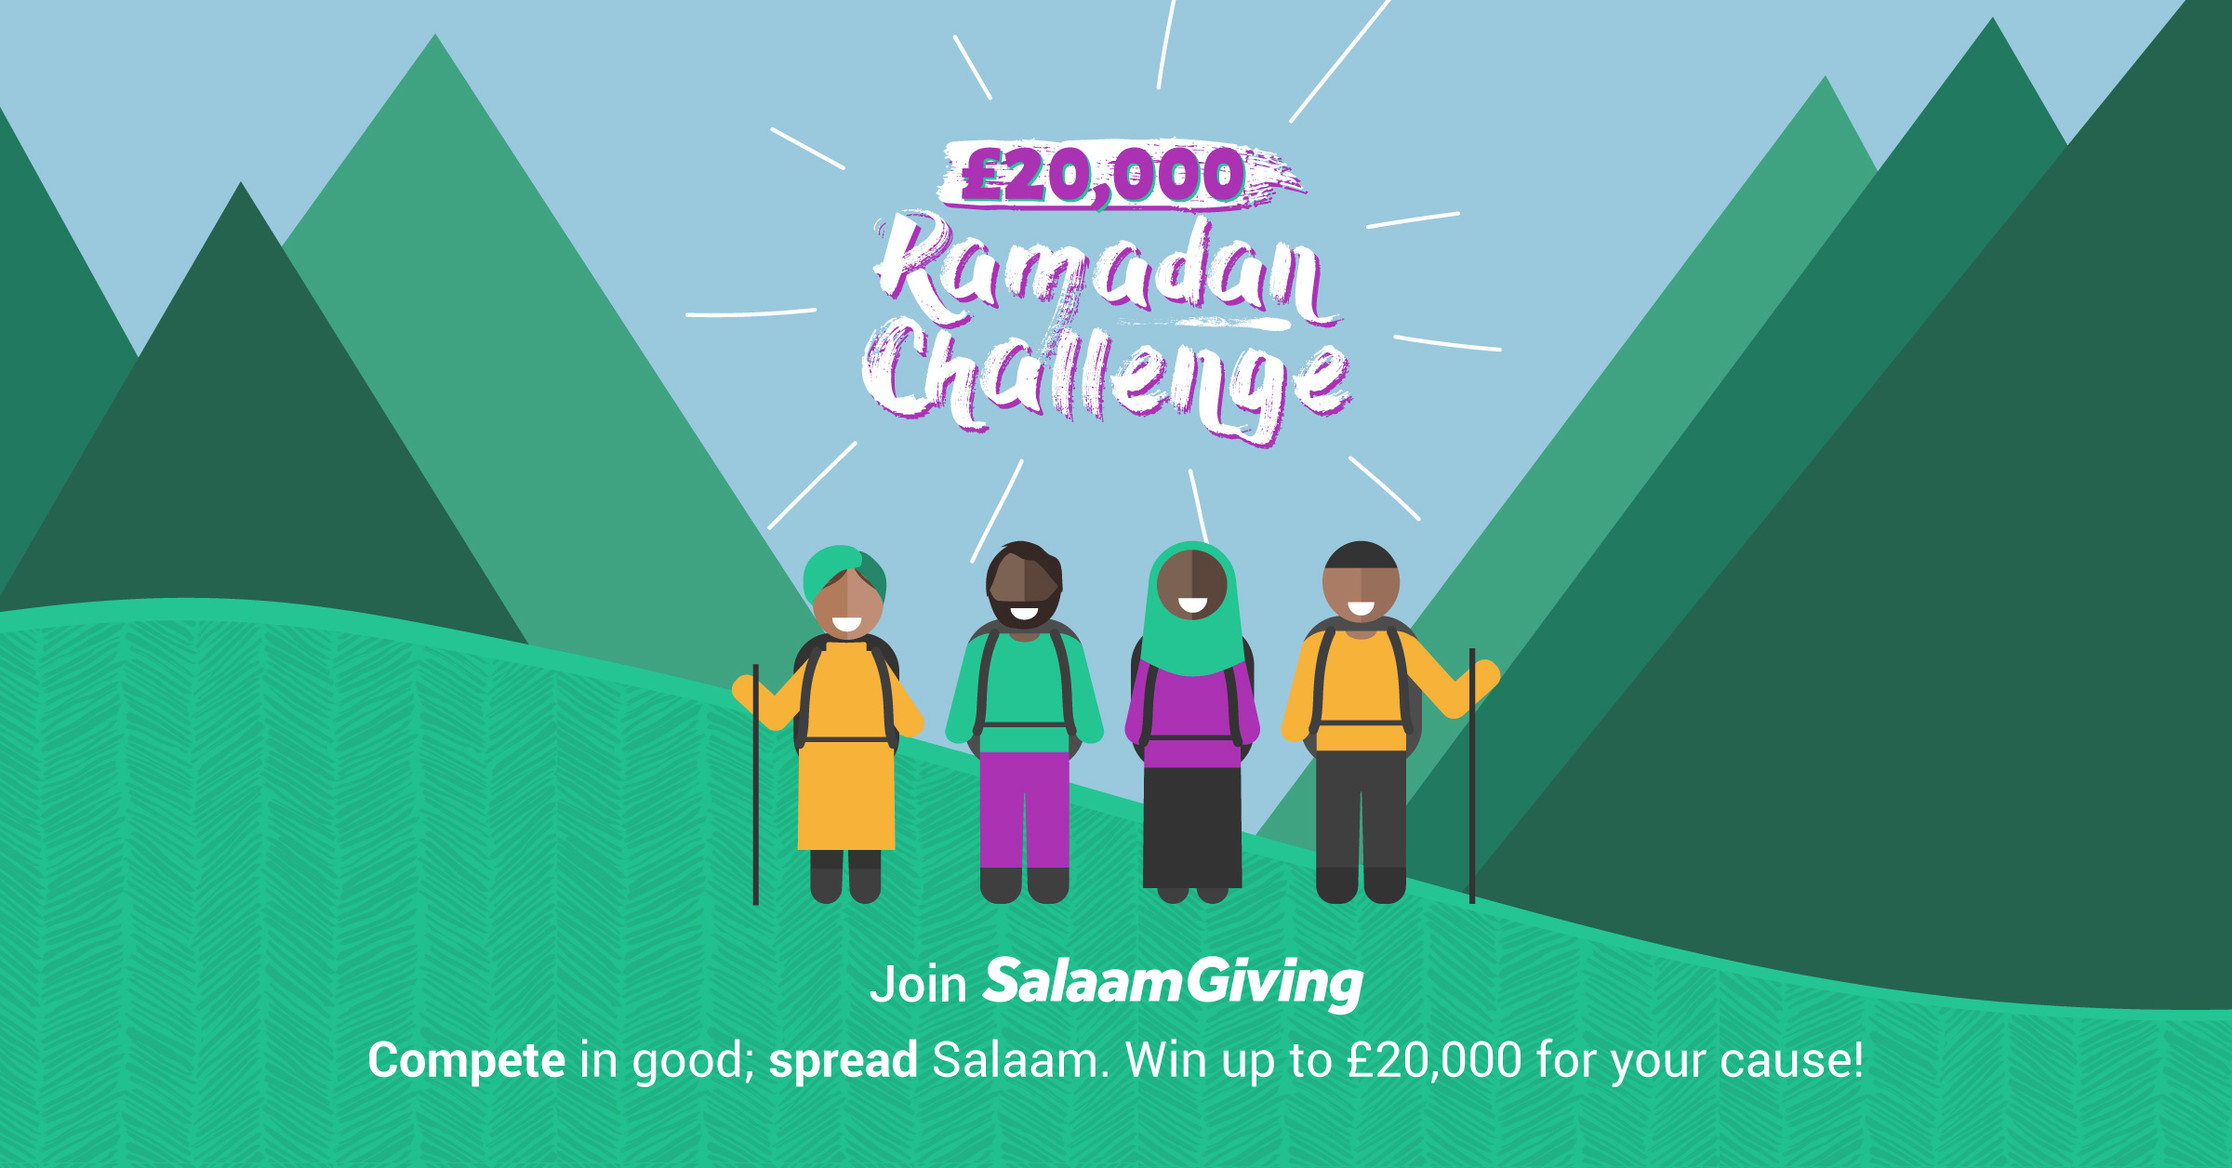 salaamgiving_20k - soft launch